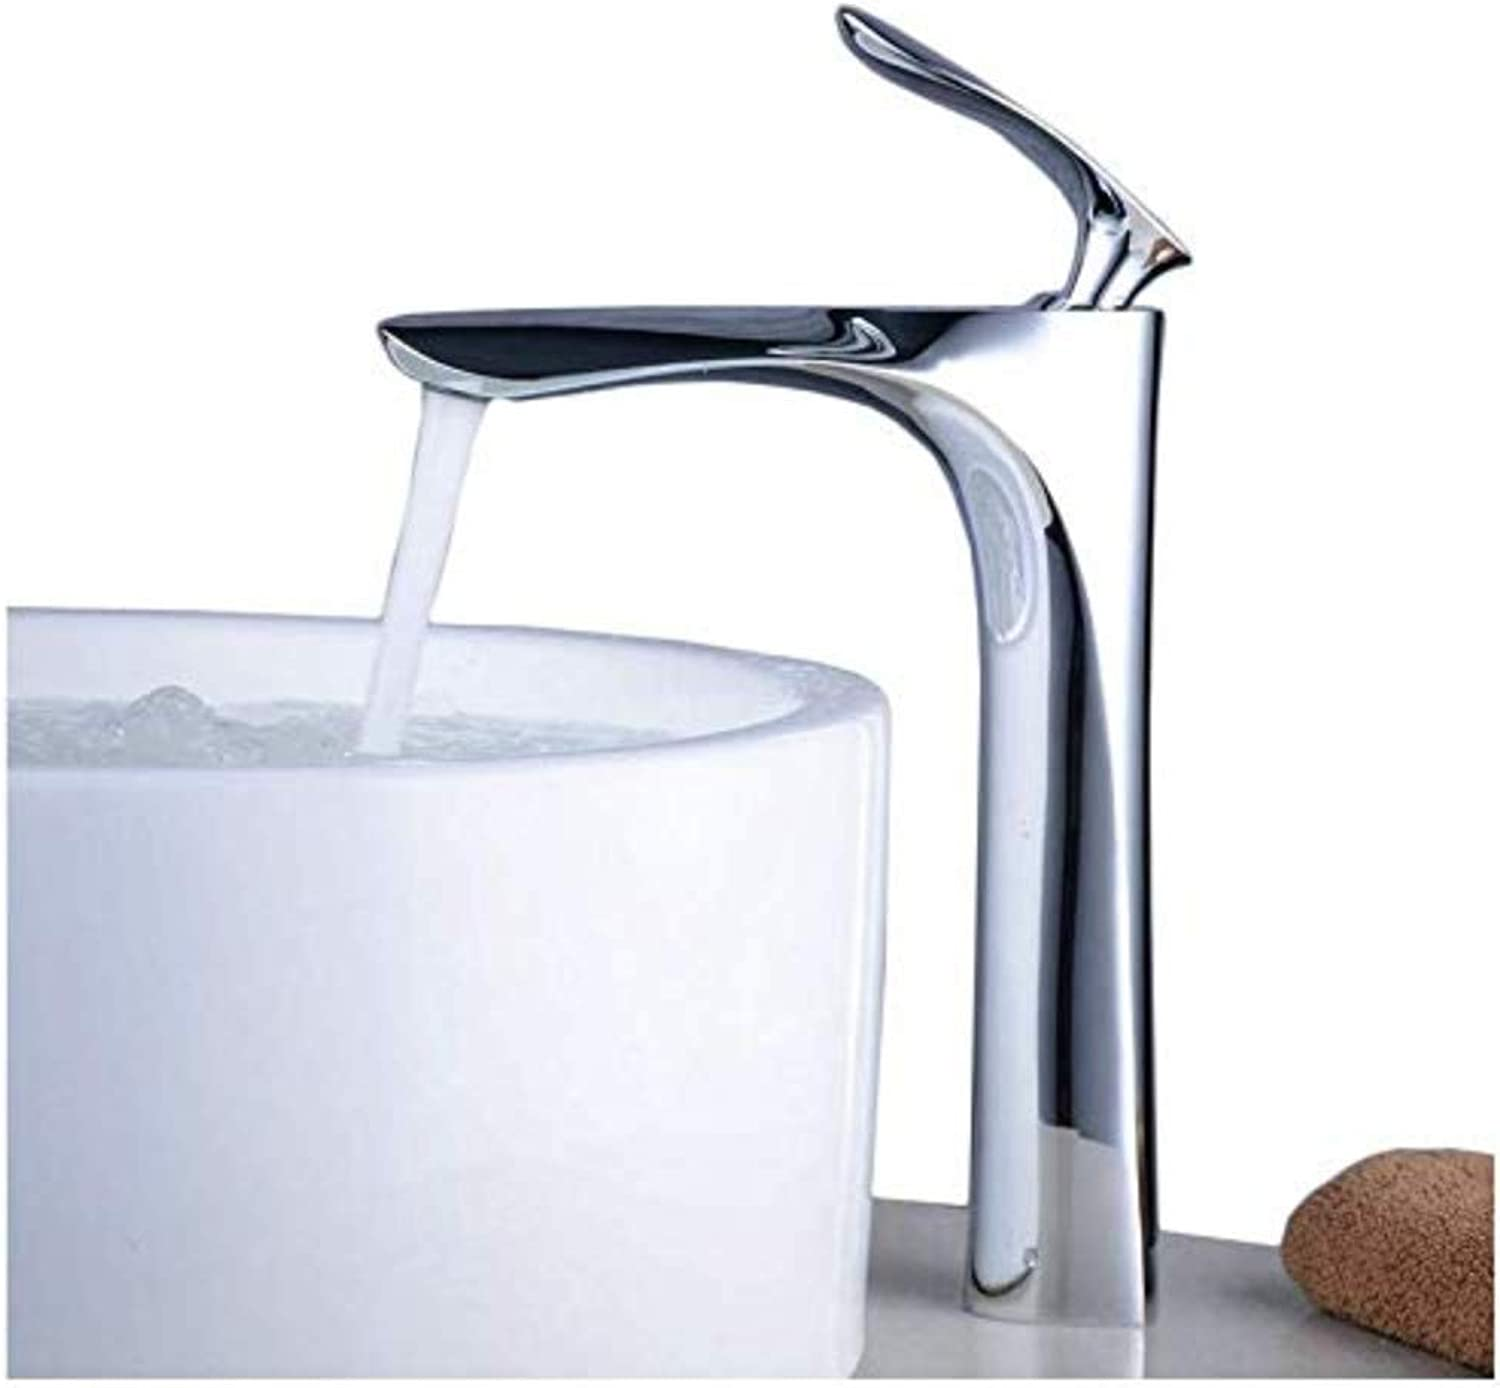 Faucettall Counter Top Basin Mixer Tap Curved Bathroom Sink Tap Designer Style,Chrome,